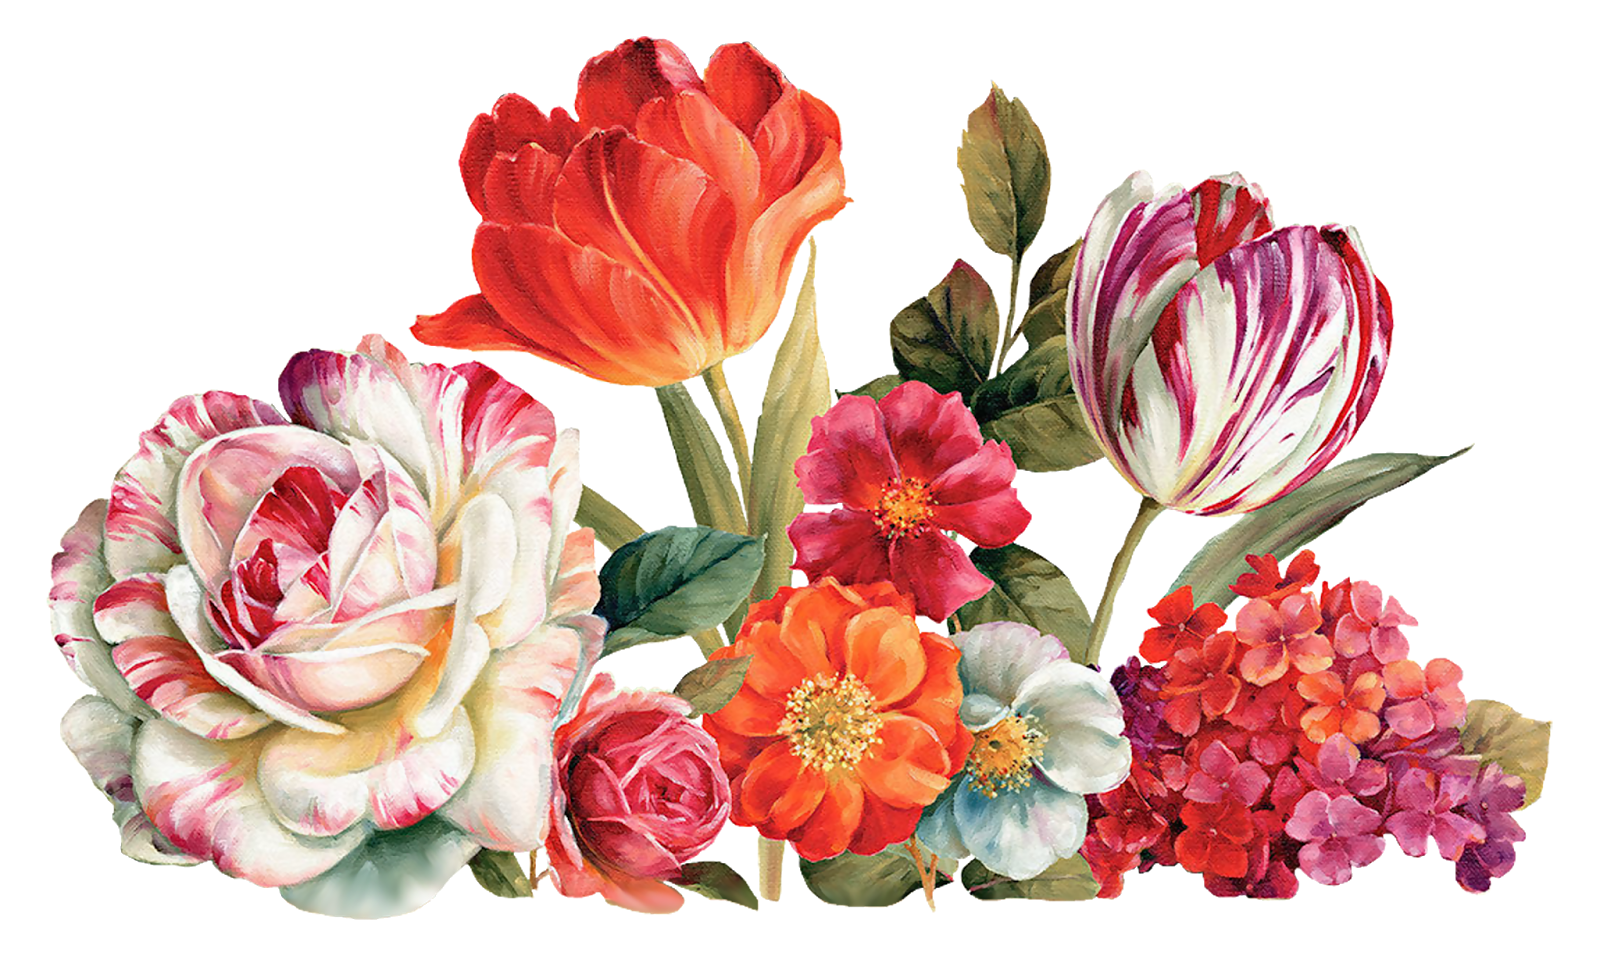 Vintage flower graphic png. Painting by lisa audit